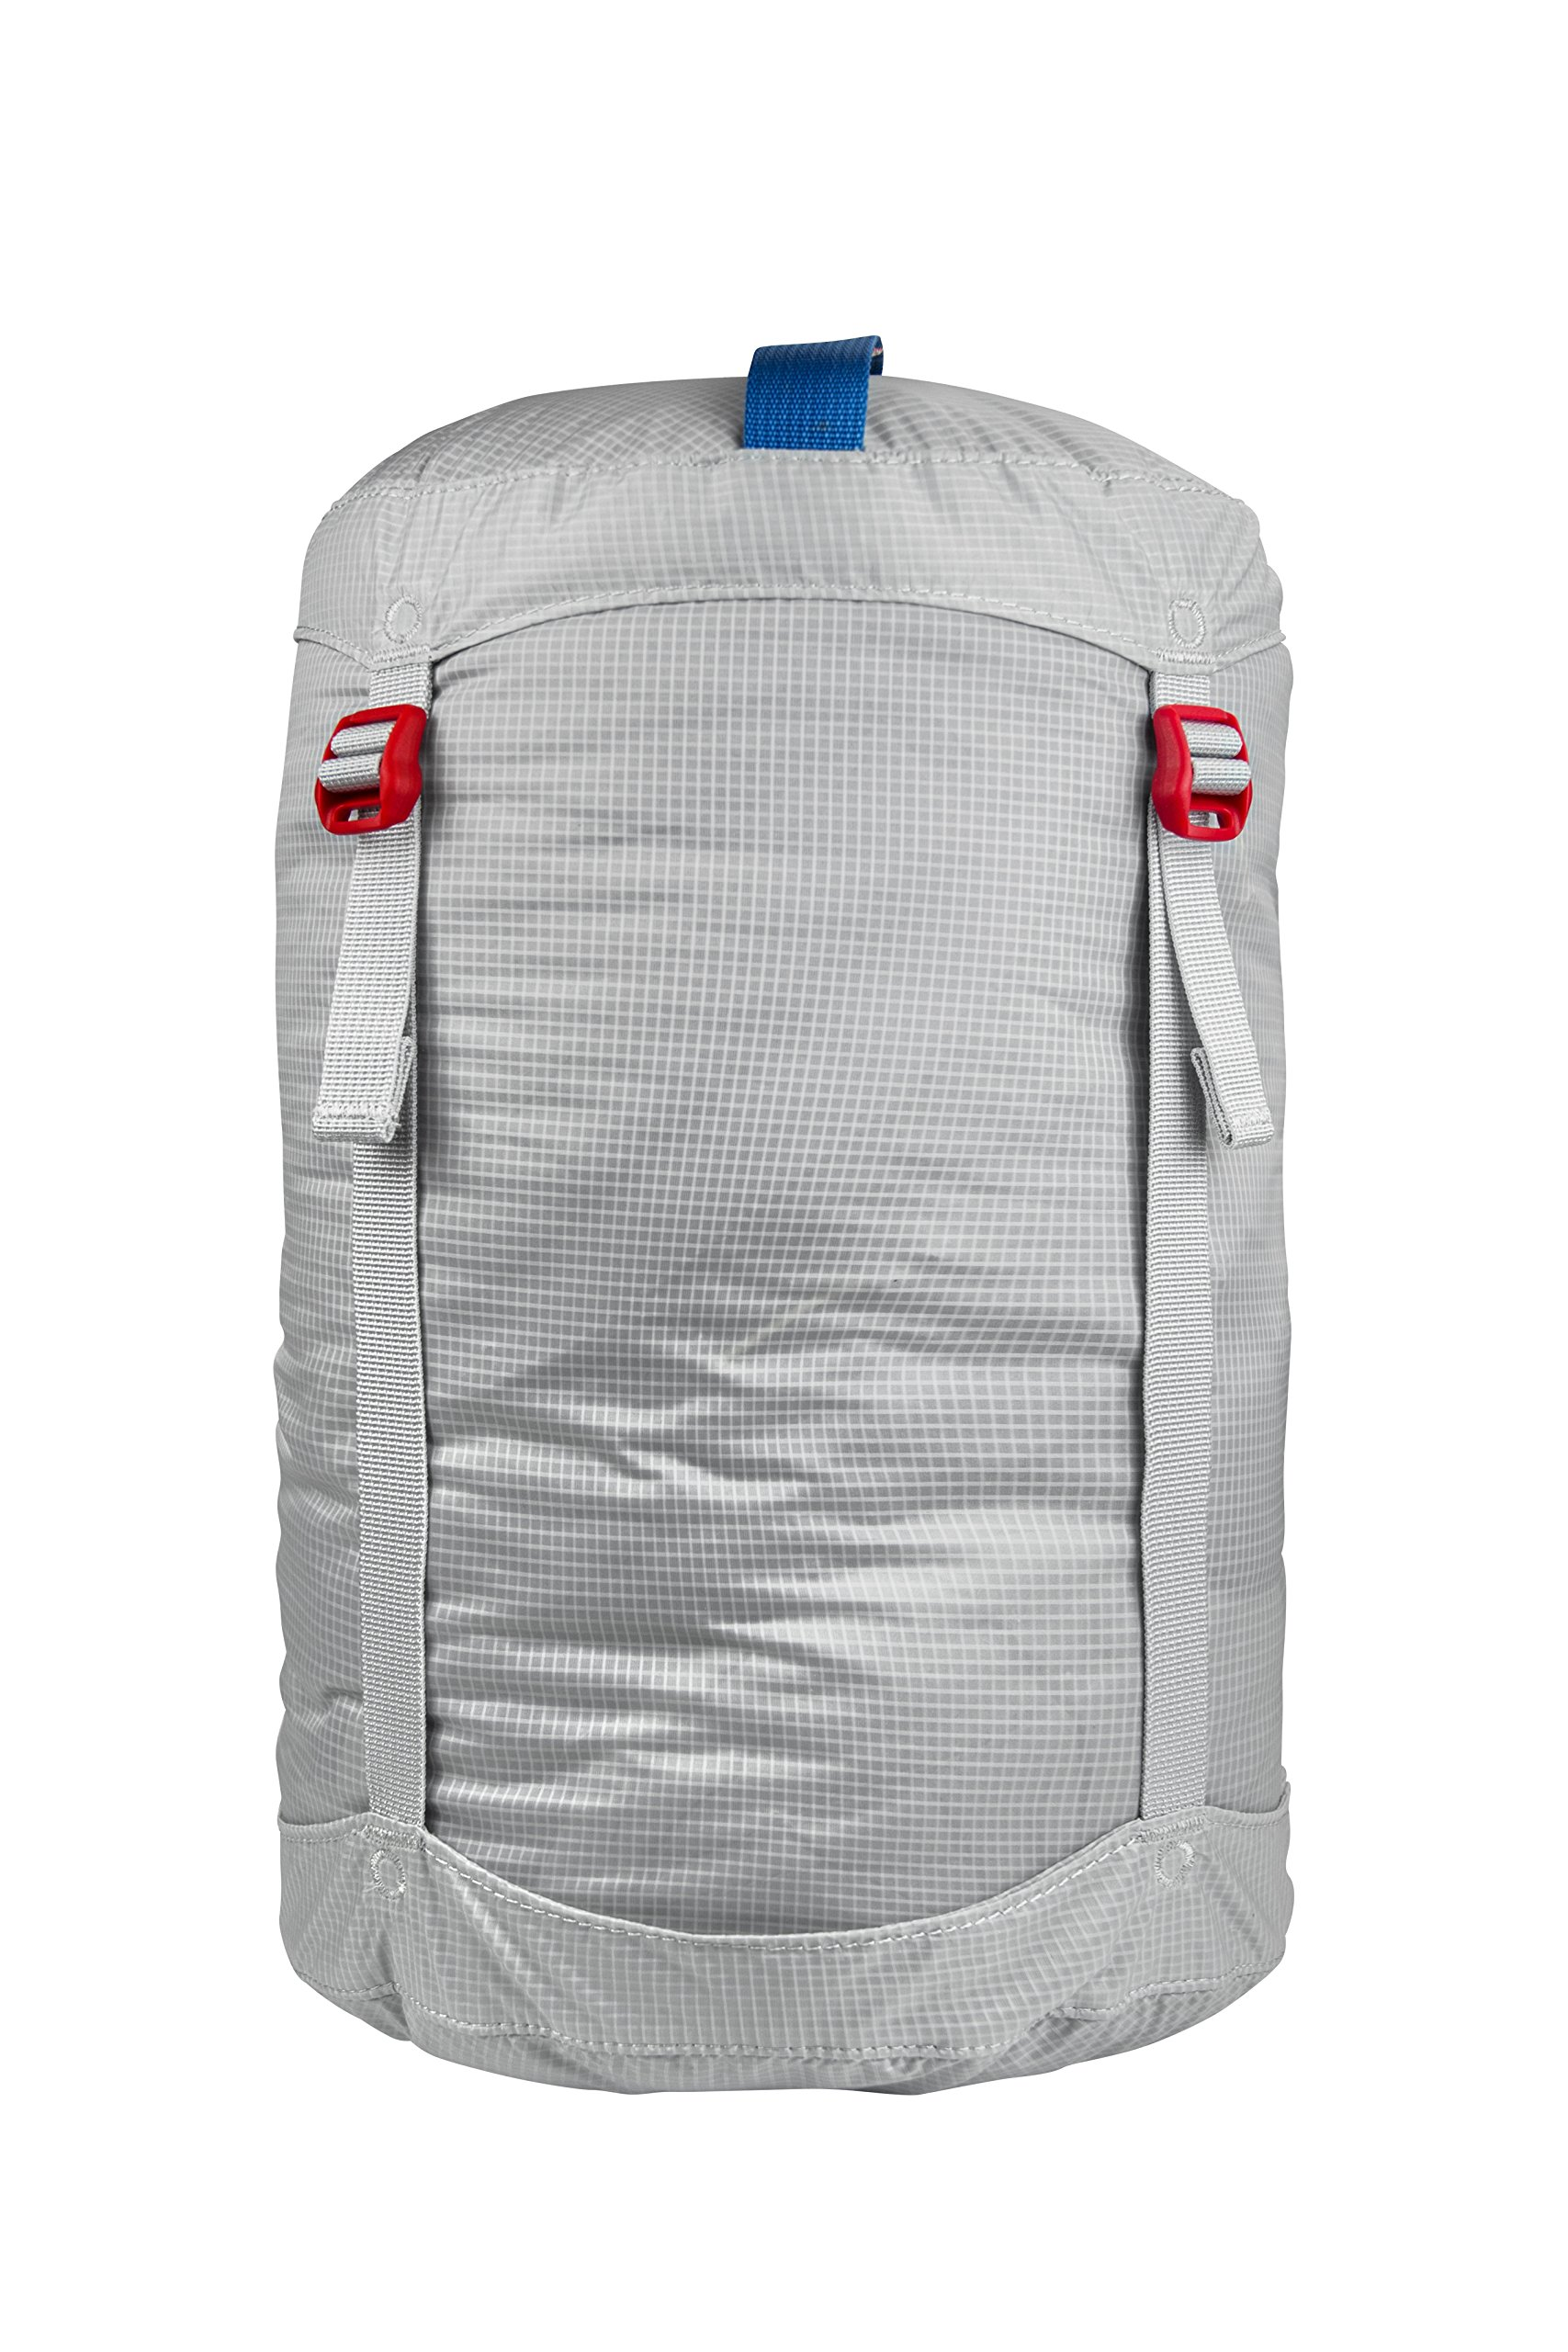 Big Agnes Tech Compression Sack, Lt Gray, 10L by Big Agnes